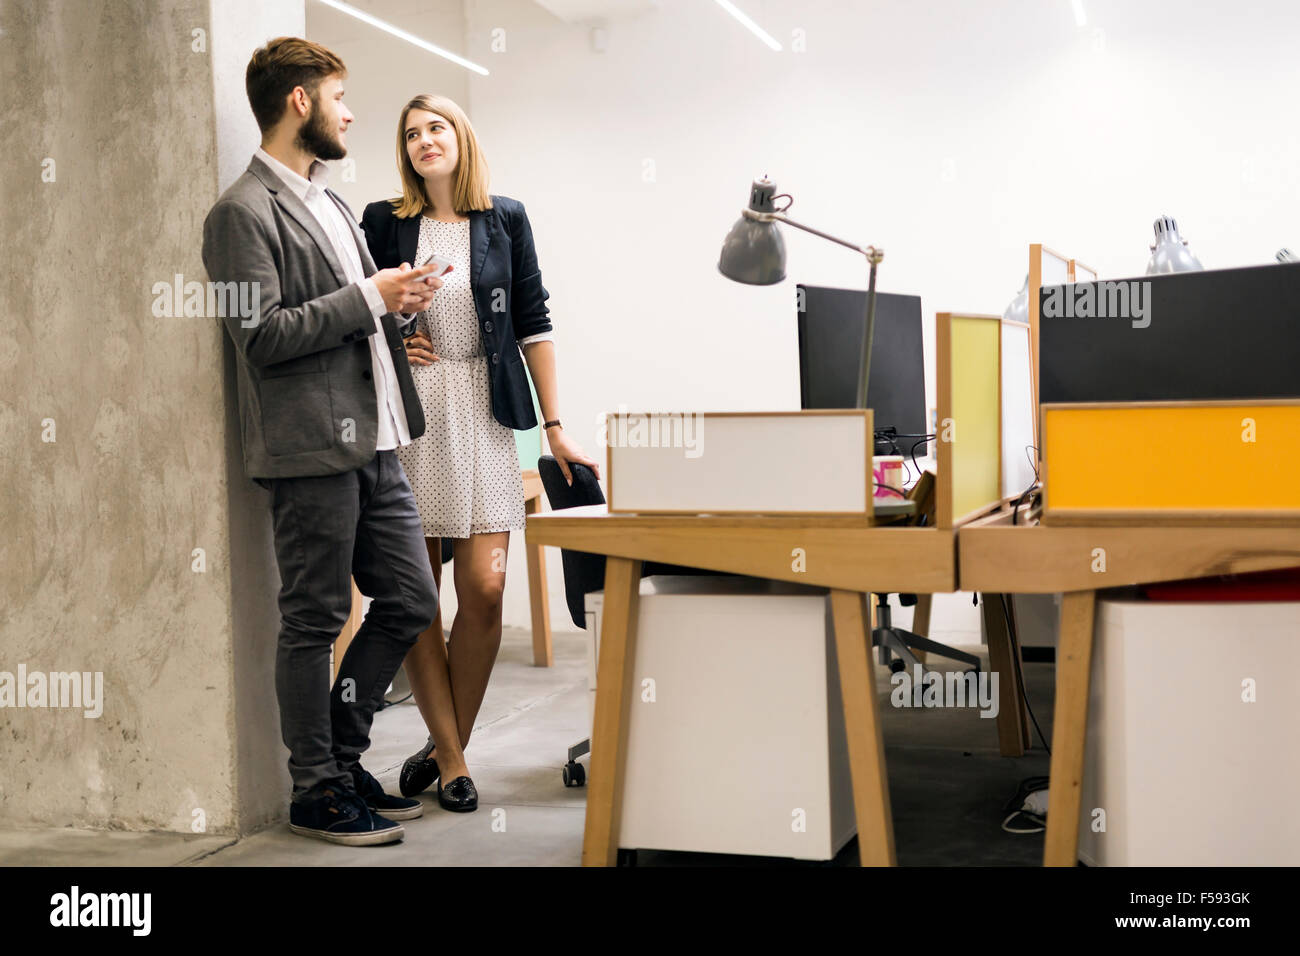 Colleagues using phone in an office and talking Stock Photo